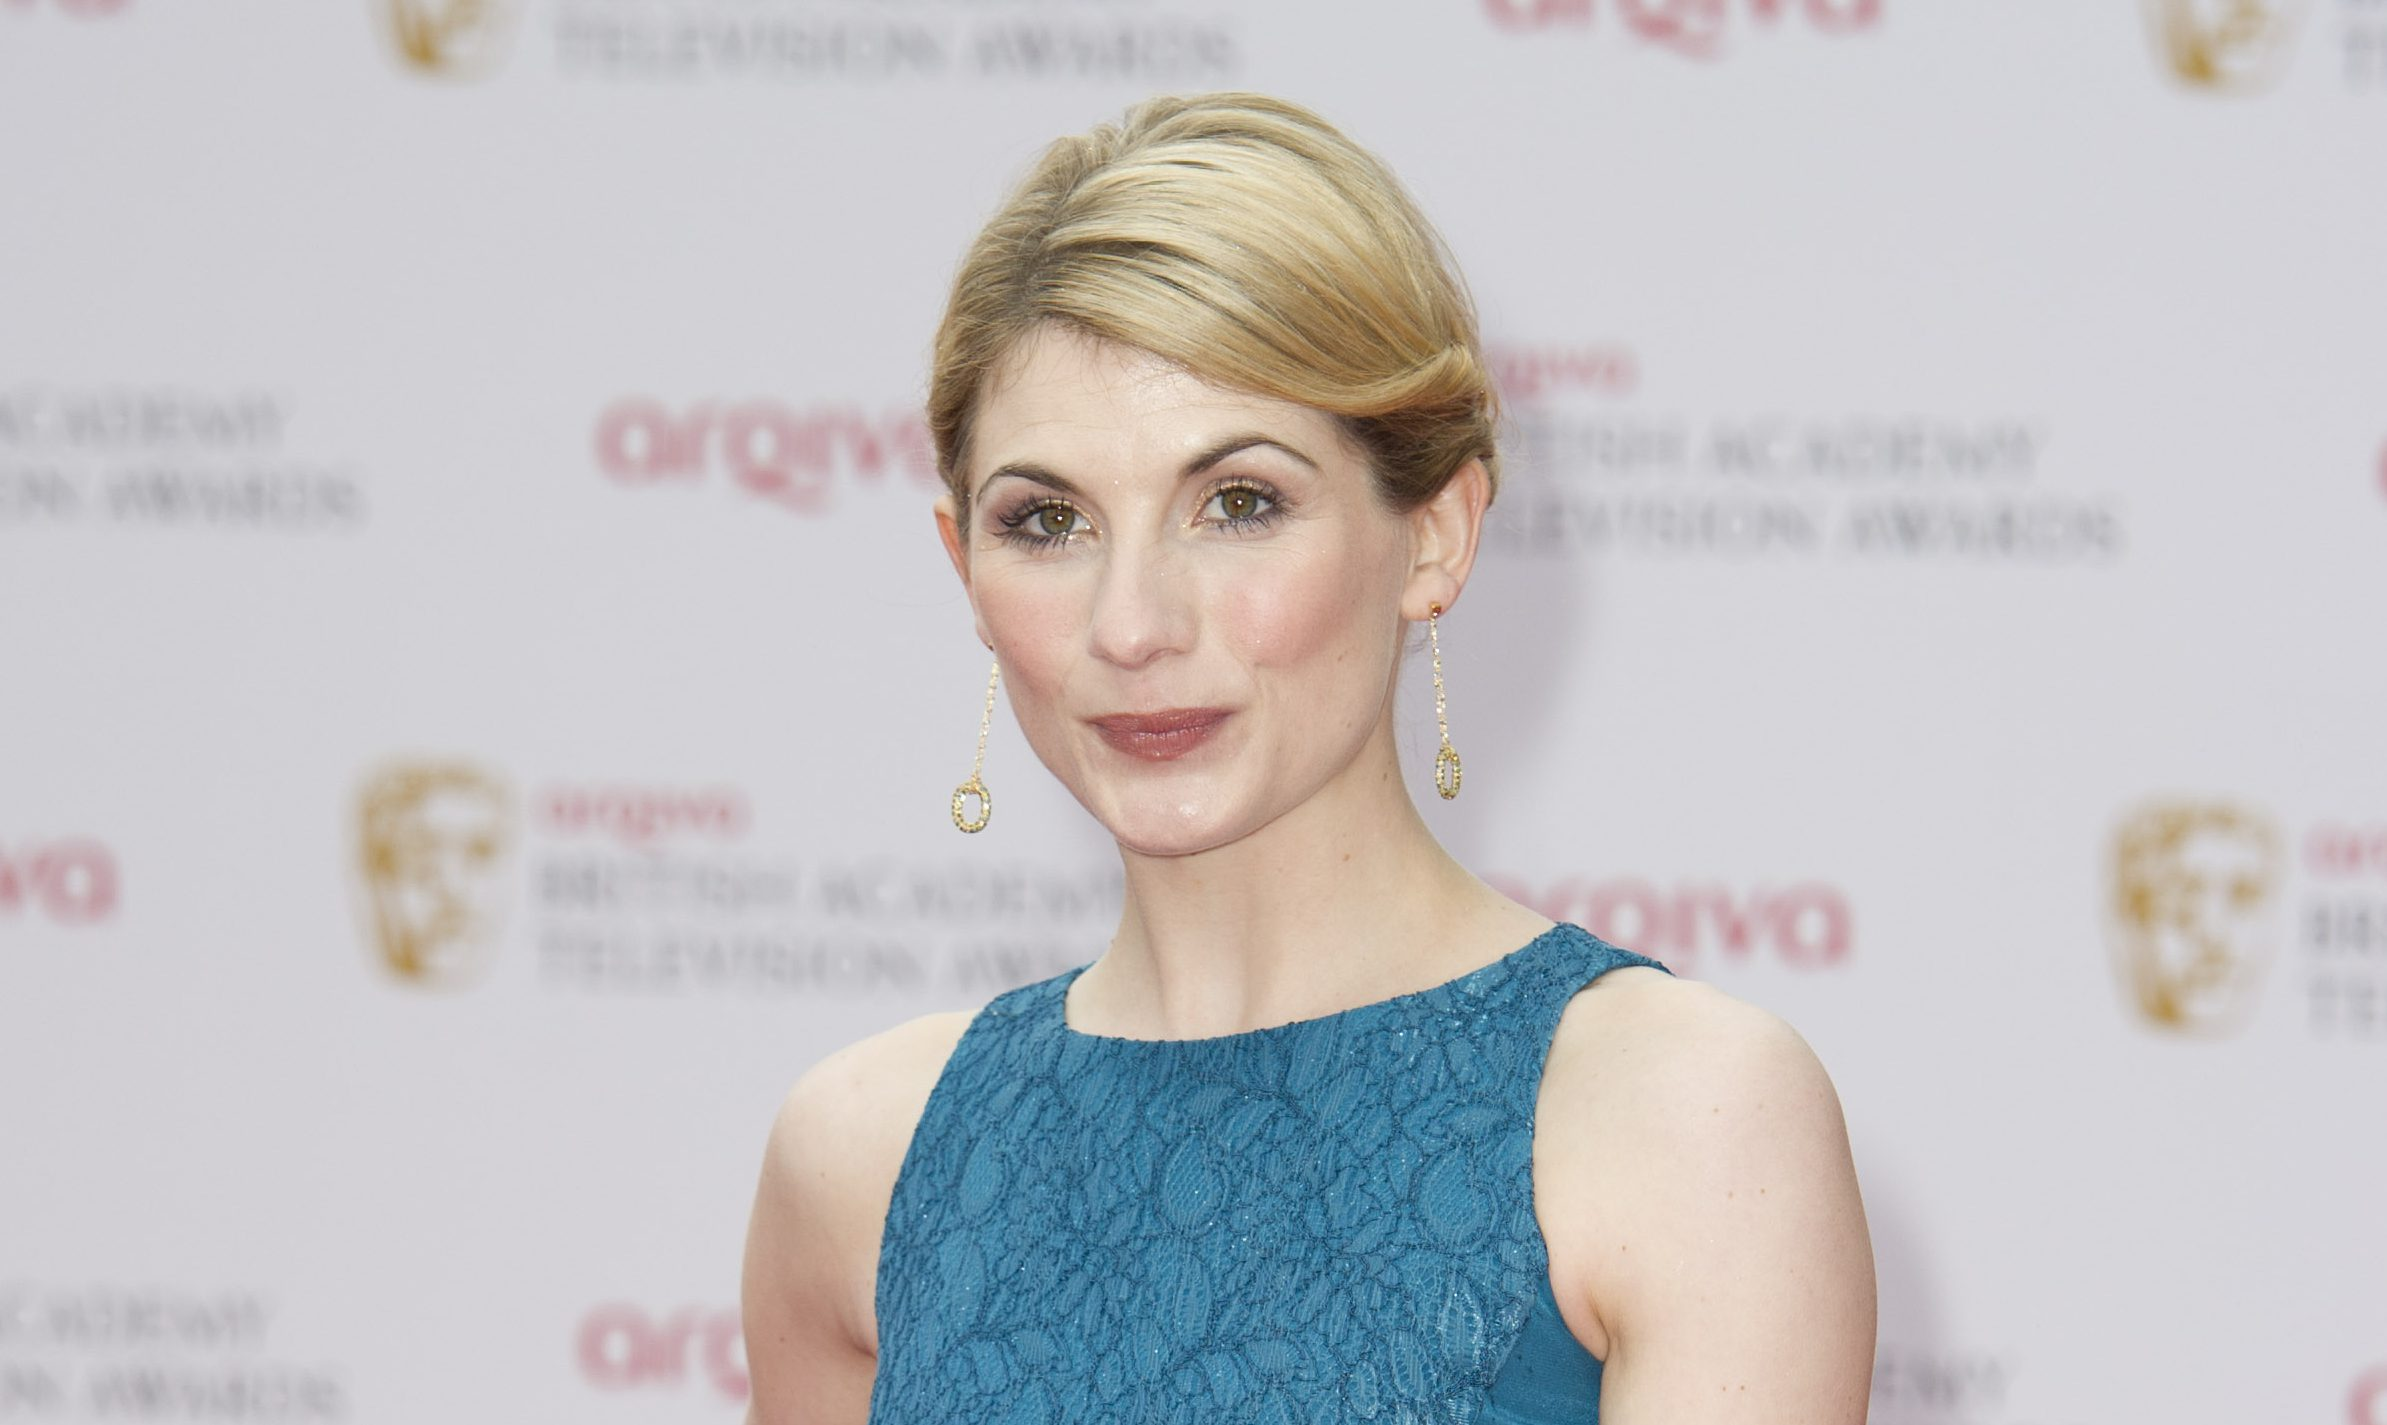 Jodie Whittaker arrives for the British Academy Television Awards BAFTA, in London, Sunday, May. 12, 2013.